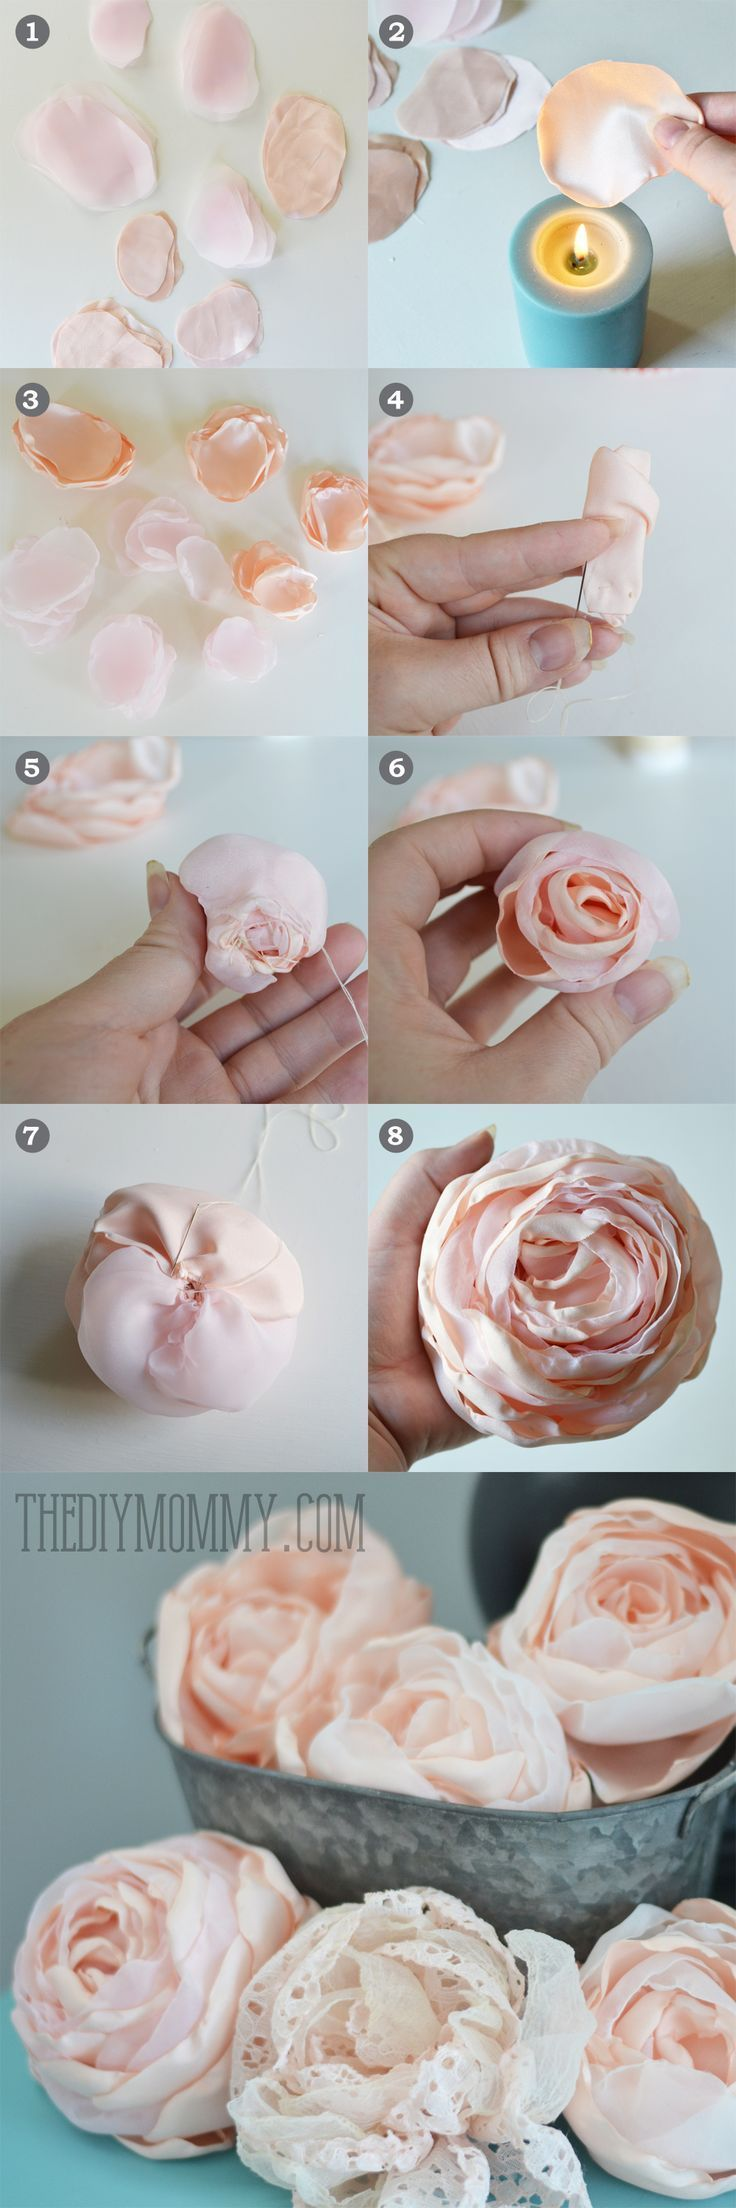 Great Diy Decorative Home Ideas İn Budget You Can Do Rose Tutorialfabric  Flower